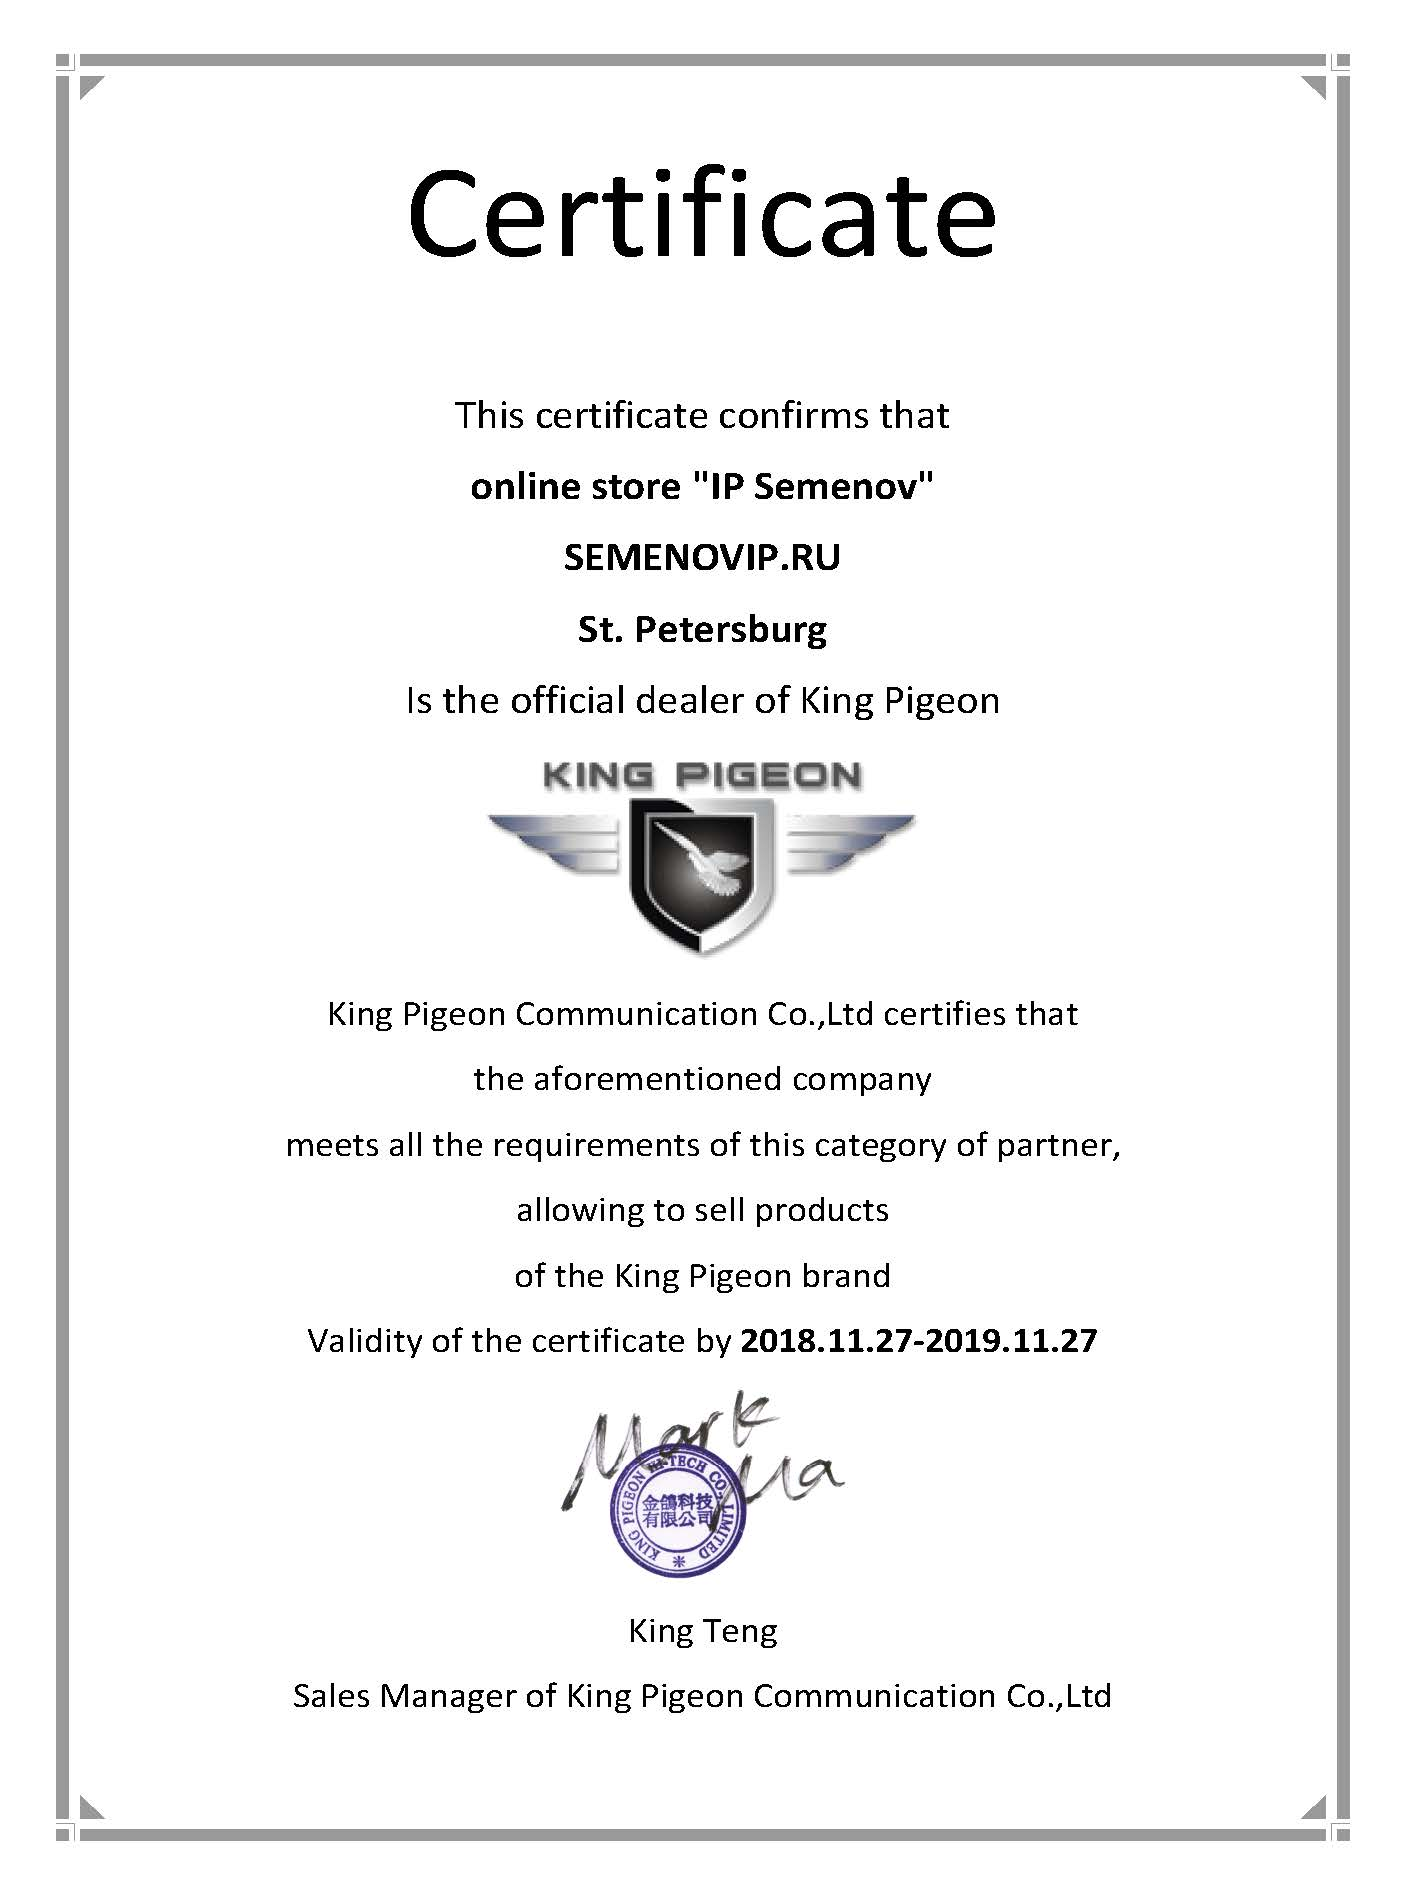 Сертификат King Pigeon Communication Co.,Ltd.